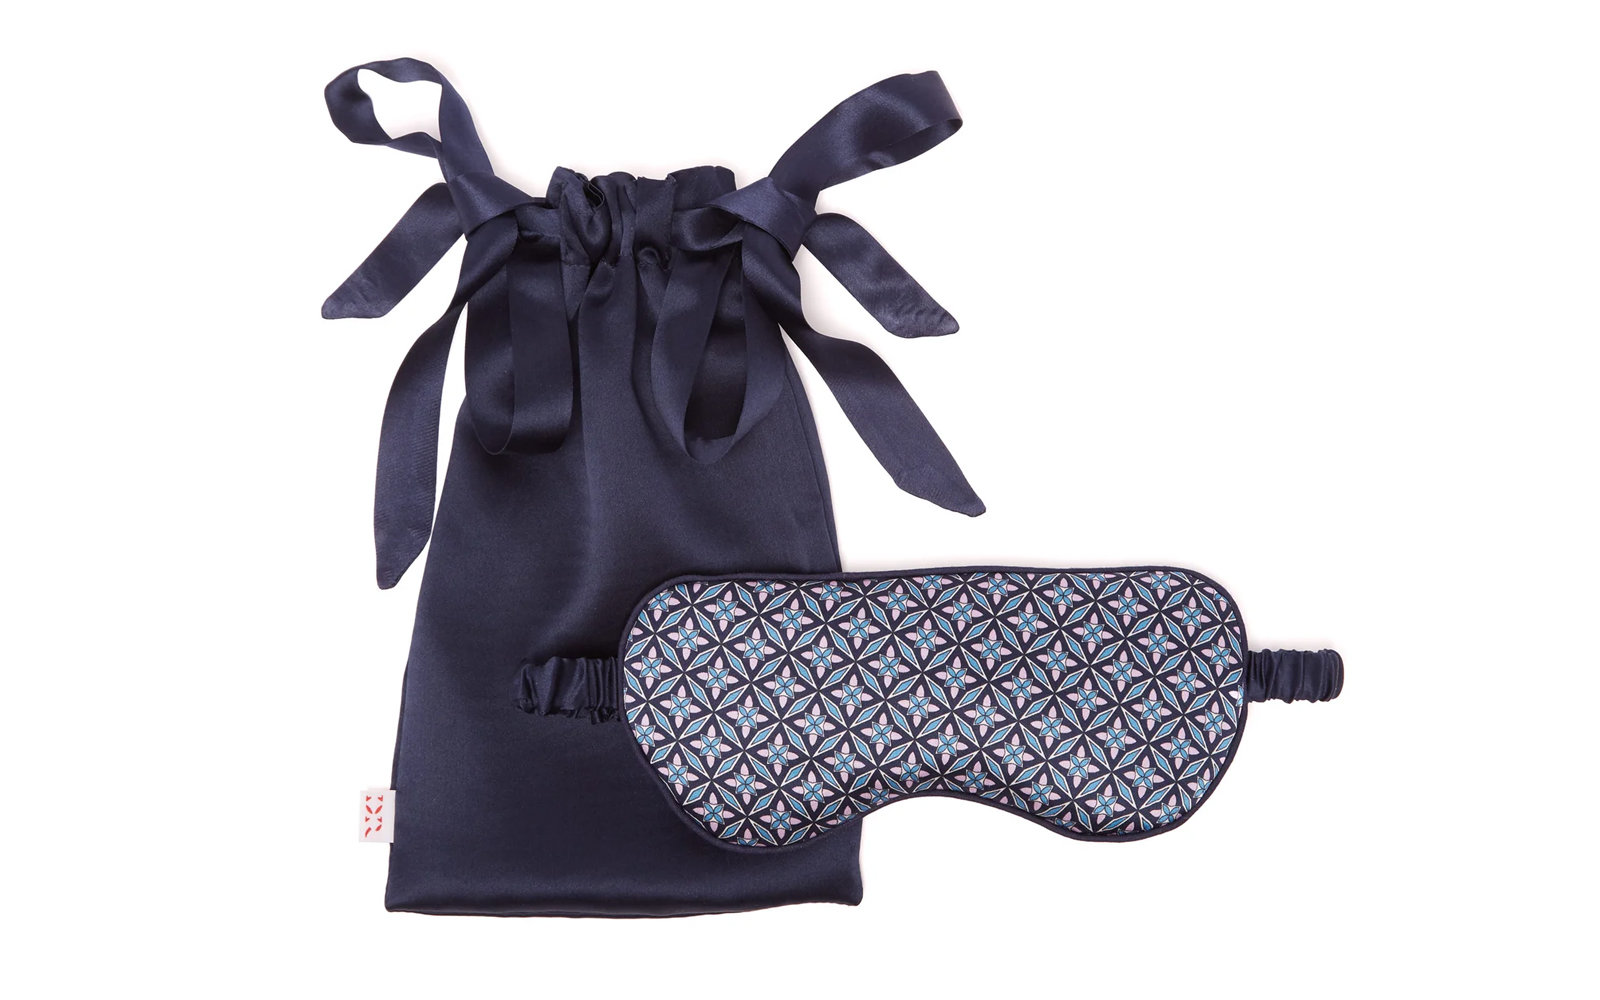 The Best Sleep Masks for Traveling | Travel + Leisure